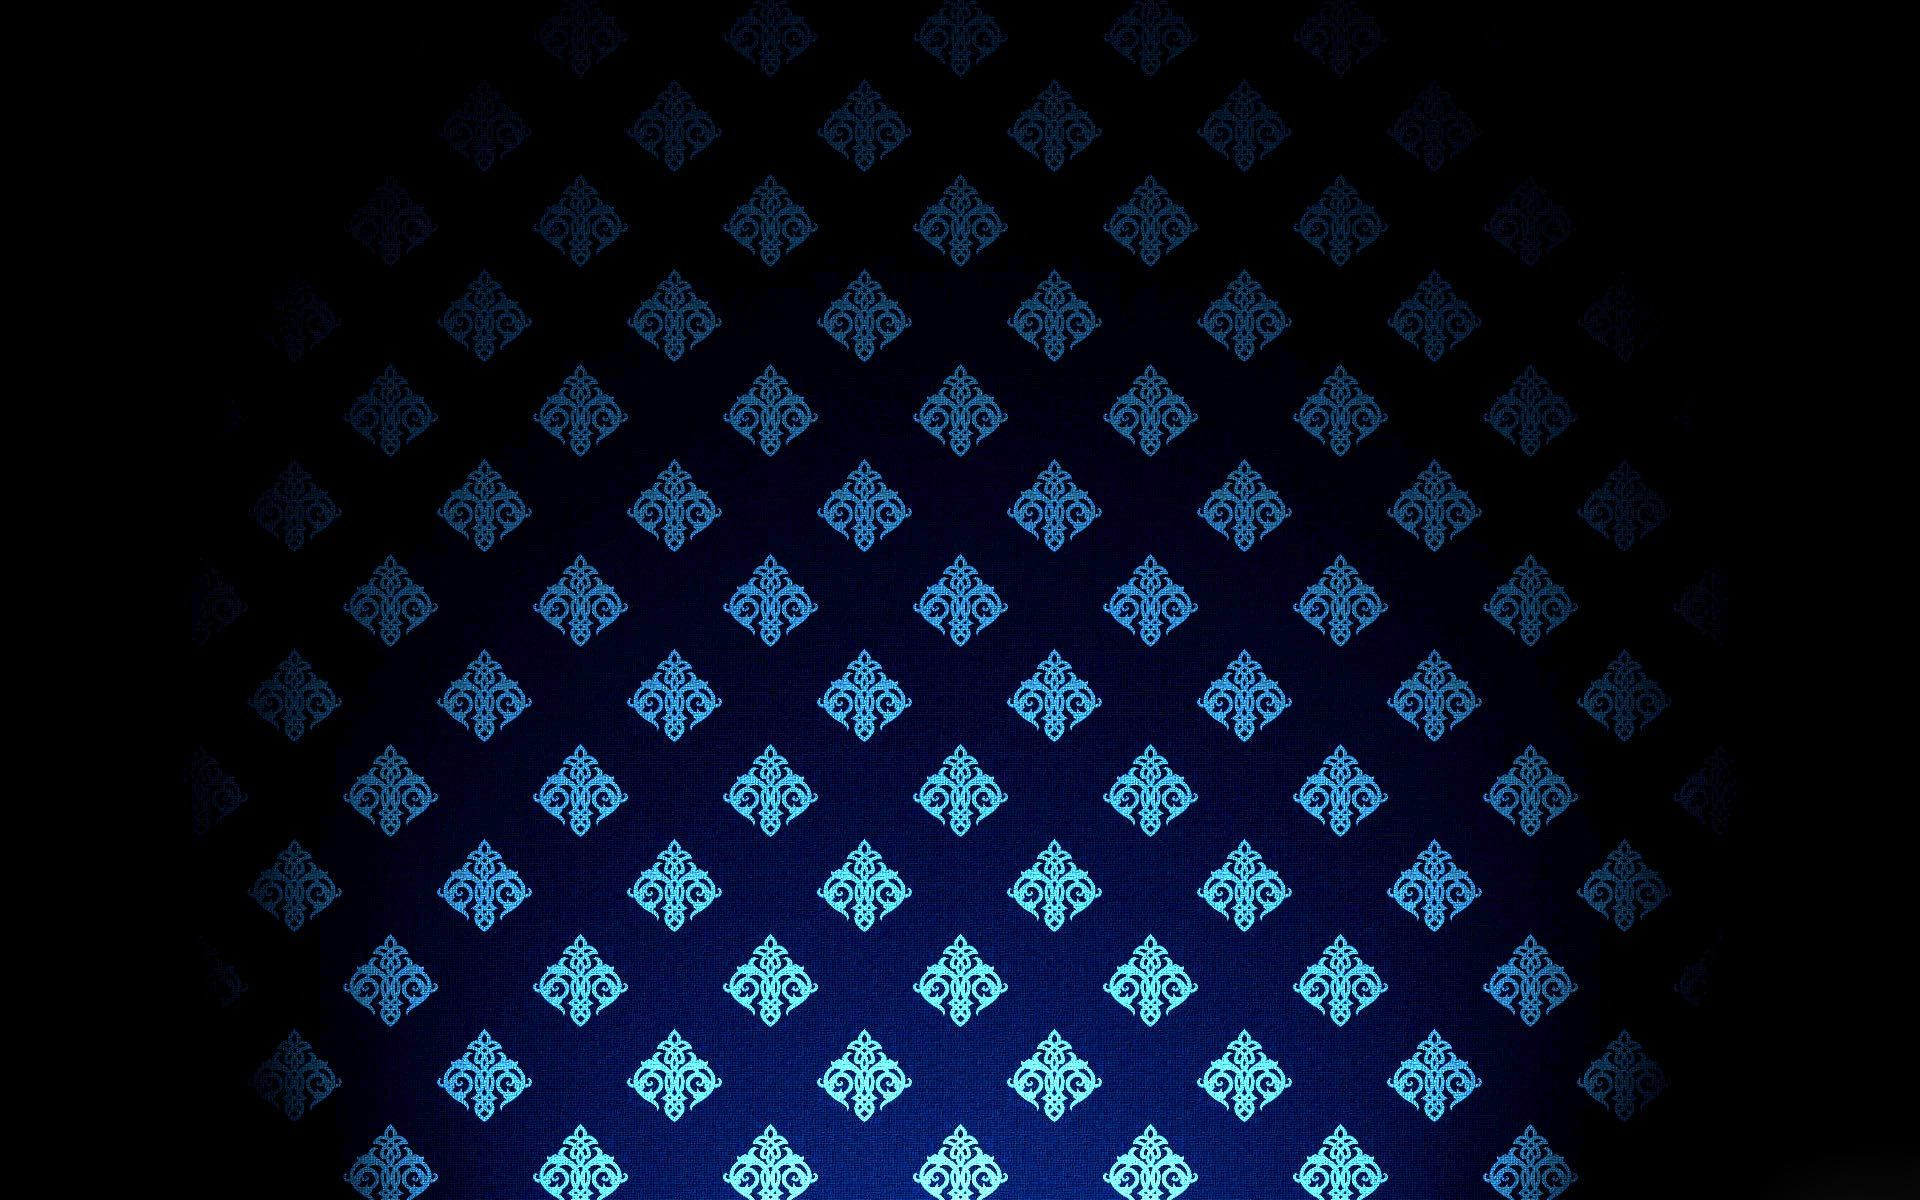 Royal Blue Wallpaper Royal Blue Wallpaper Royal Blue Background Blue Background Wallpapers